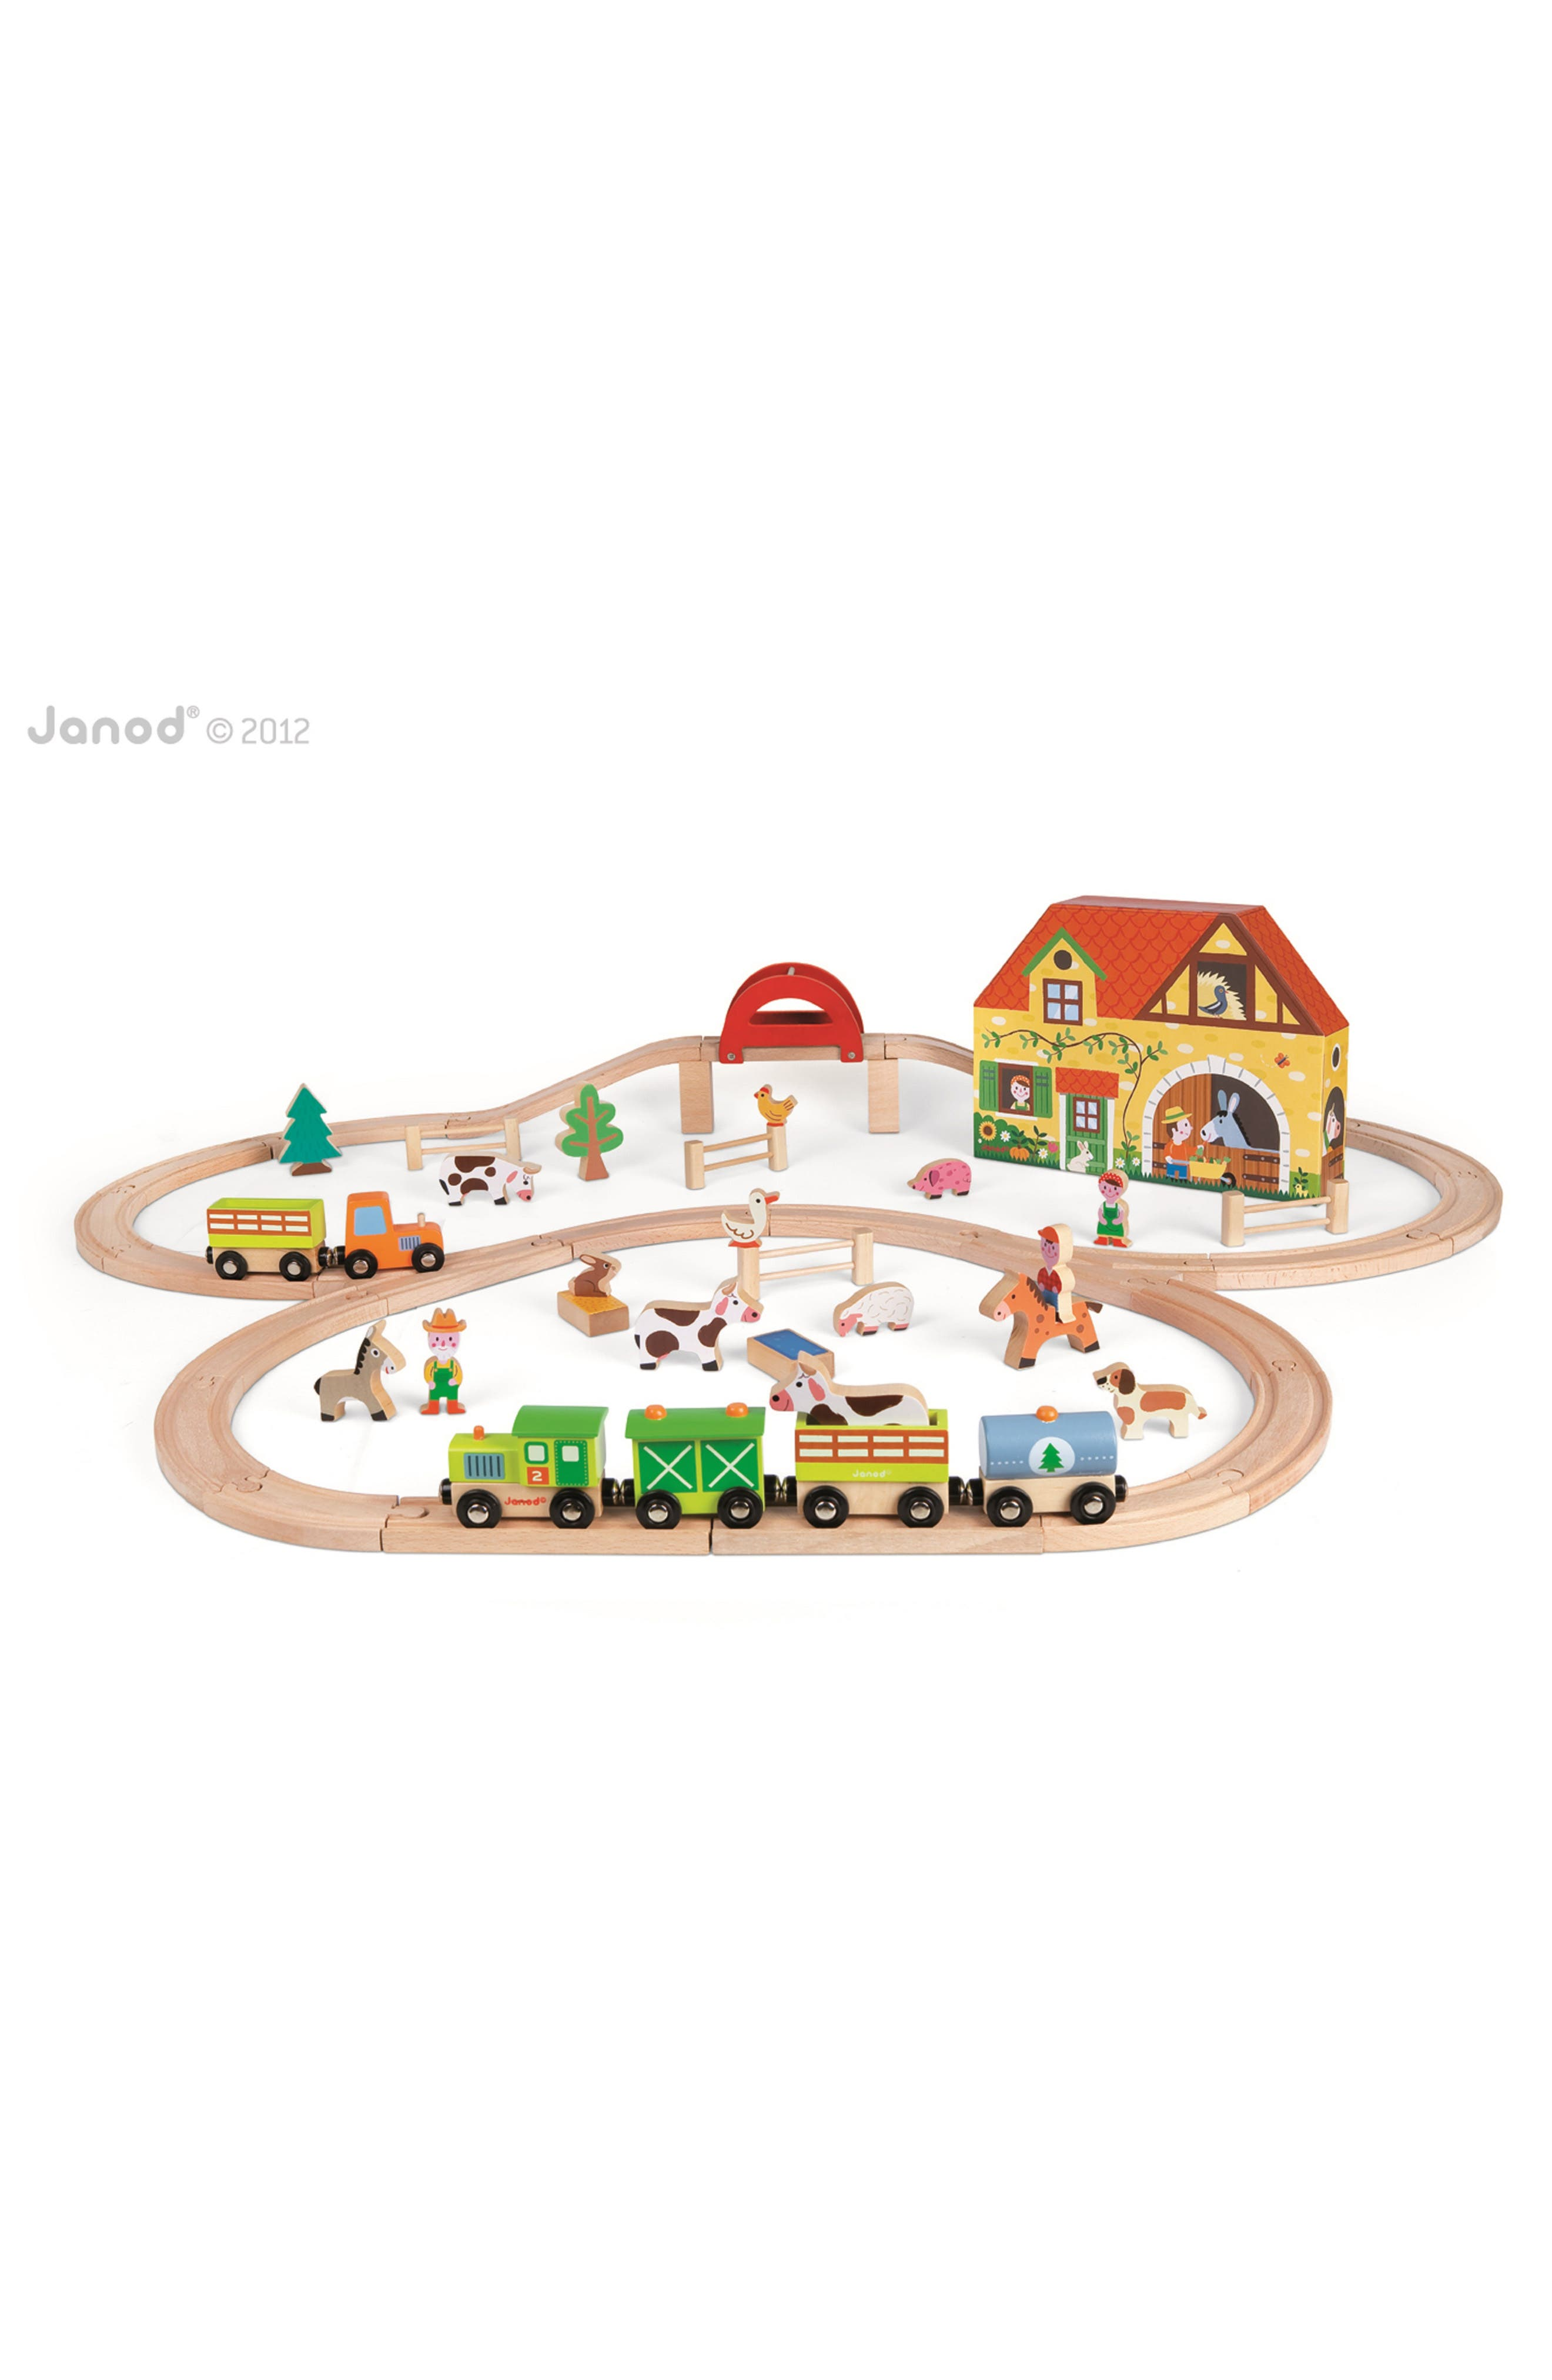 Alternate Image 1 Selected - Janod 'Story Express - Farm' Train Set